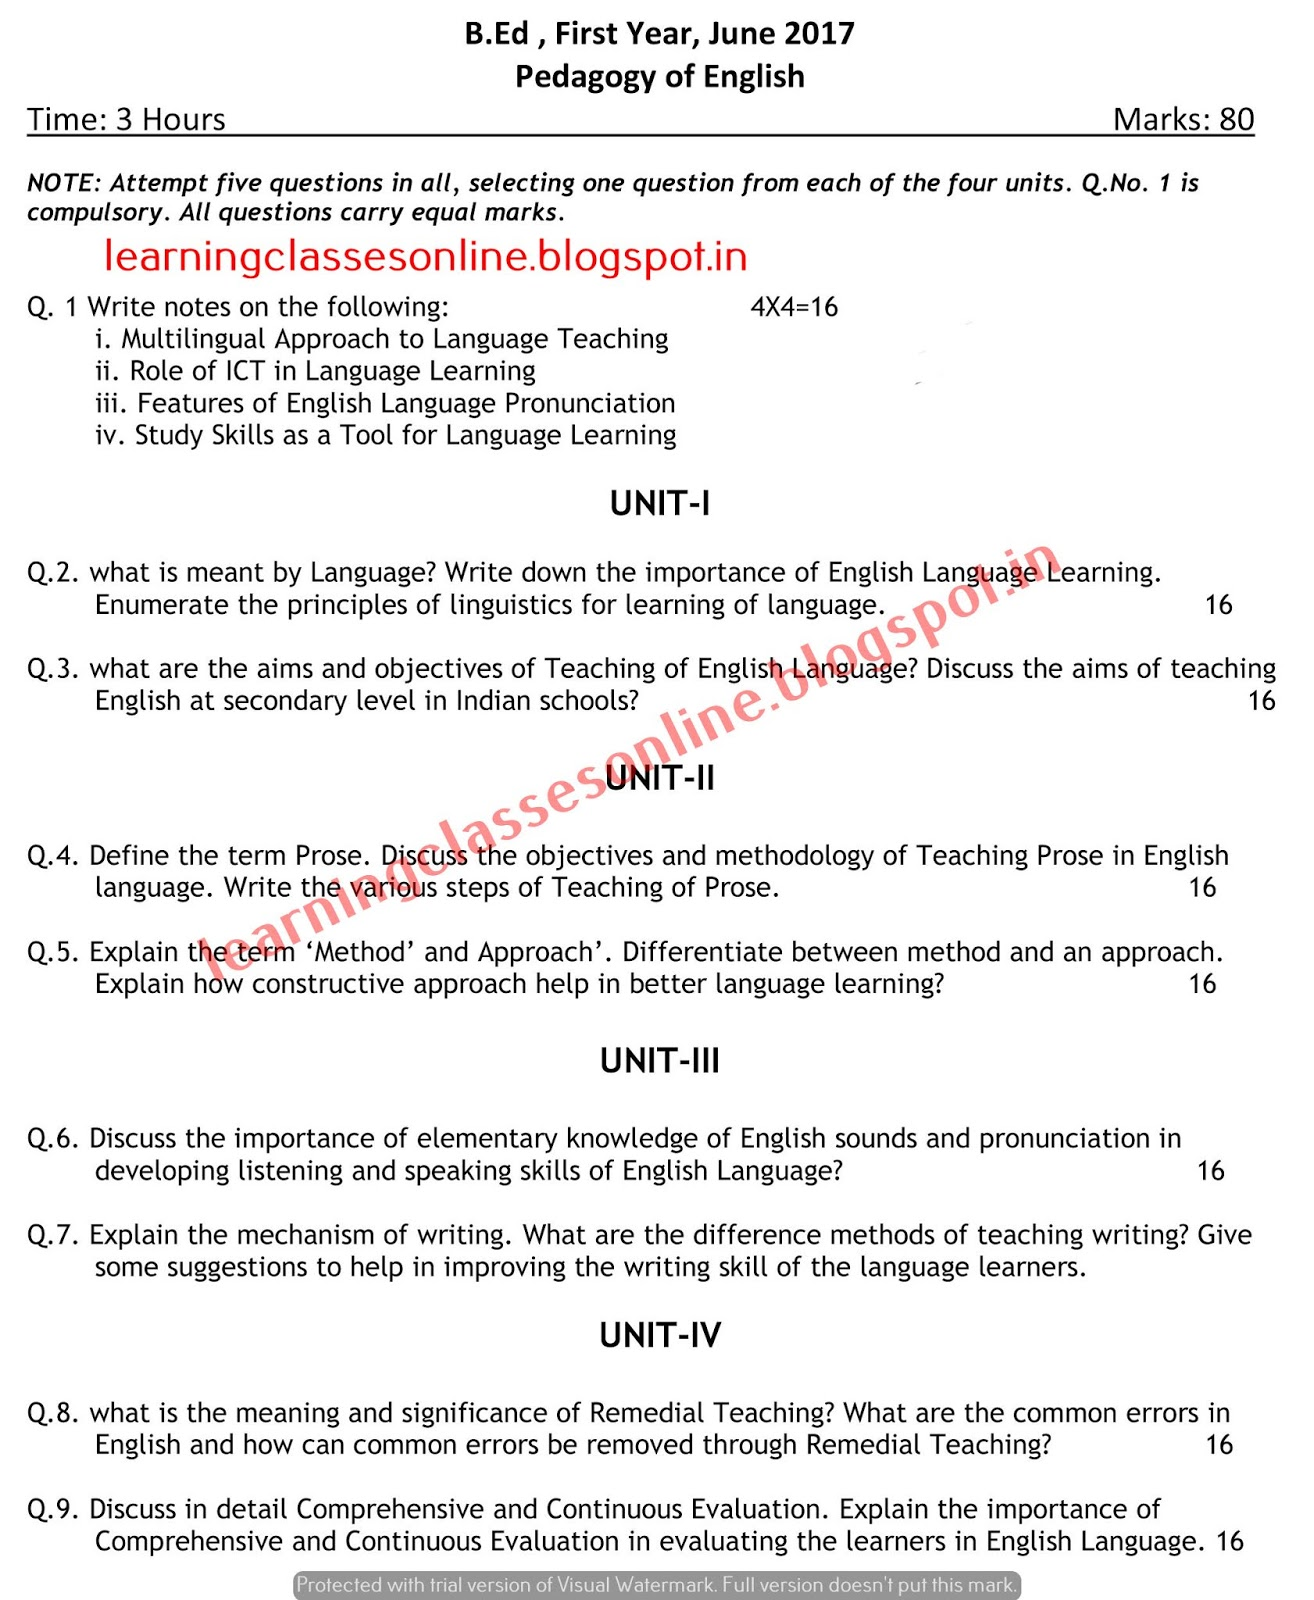 pedagogy of english 2017  B.Ed Previous Year Question Paper